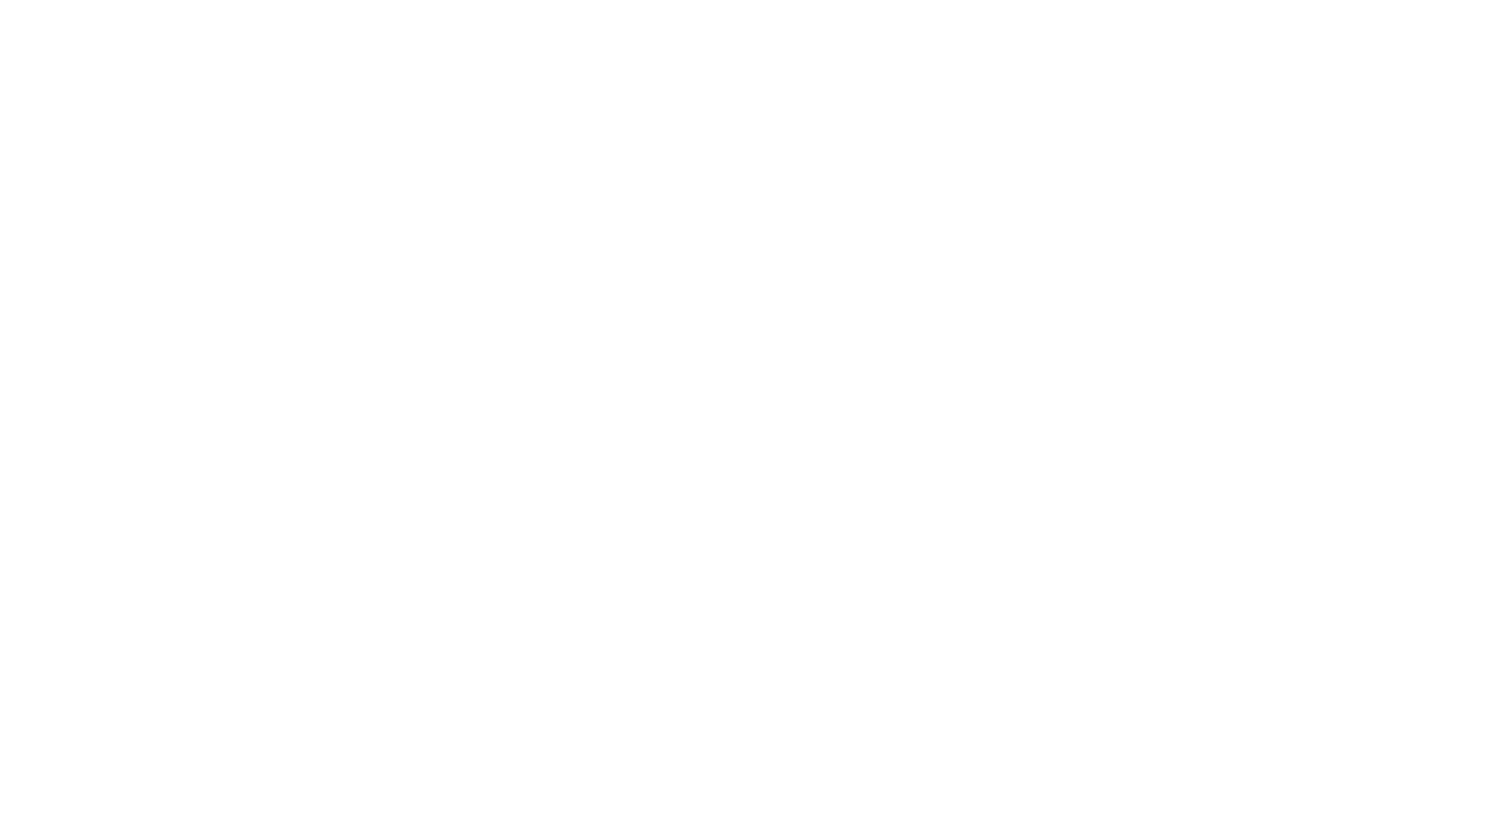 Economic Council of Okeechobee